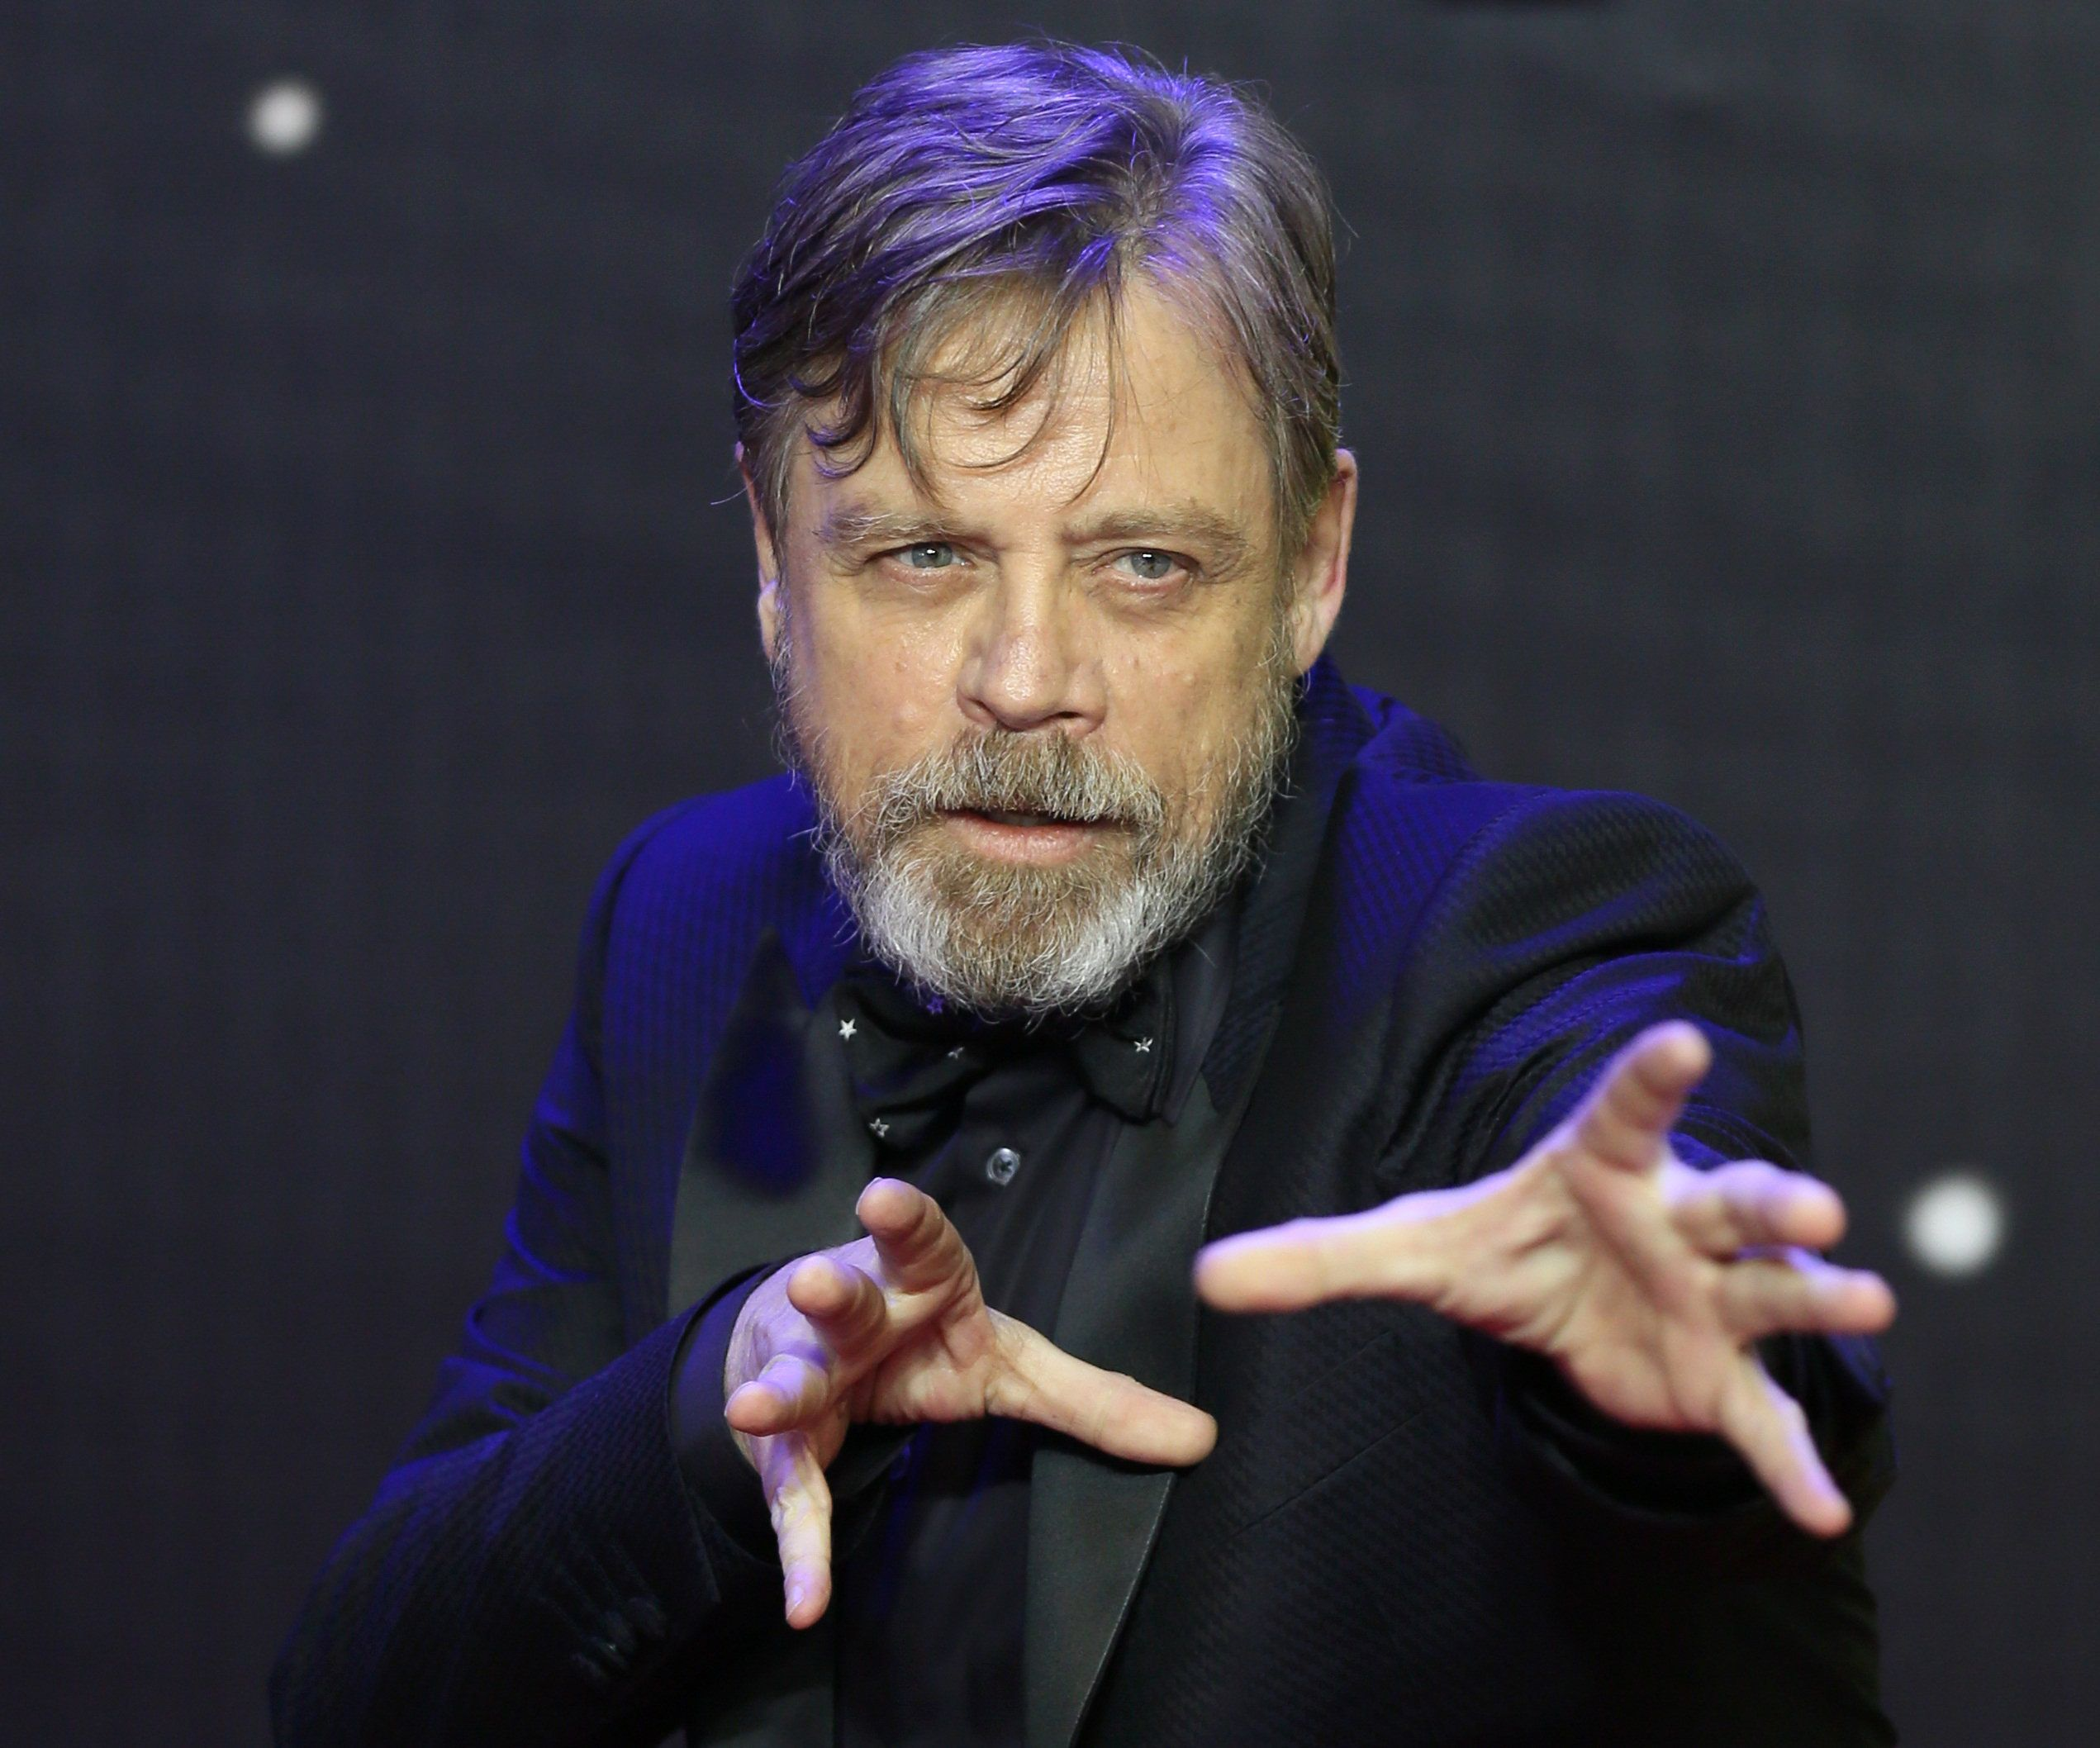 Mark Hamill gestures as he arrives at the European Premiere of Star Wars, The Force Awakens in Leicester Square, London, December 16, 2015.       REUTERS/Paul Hackett